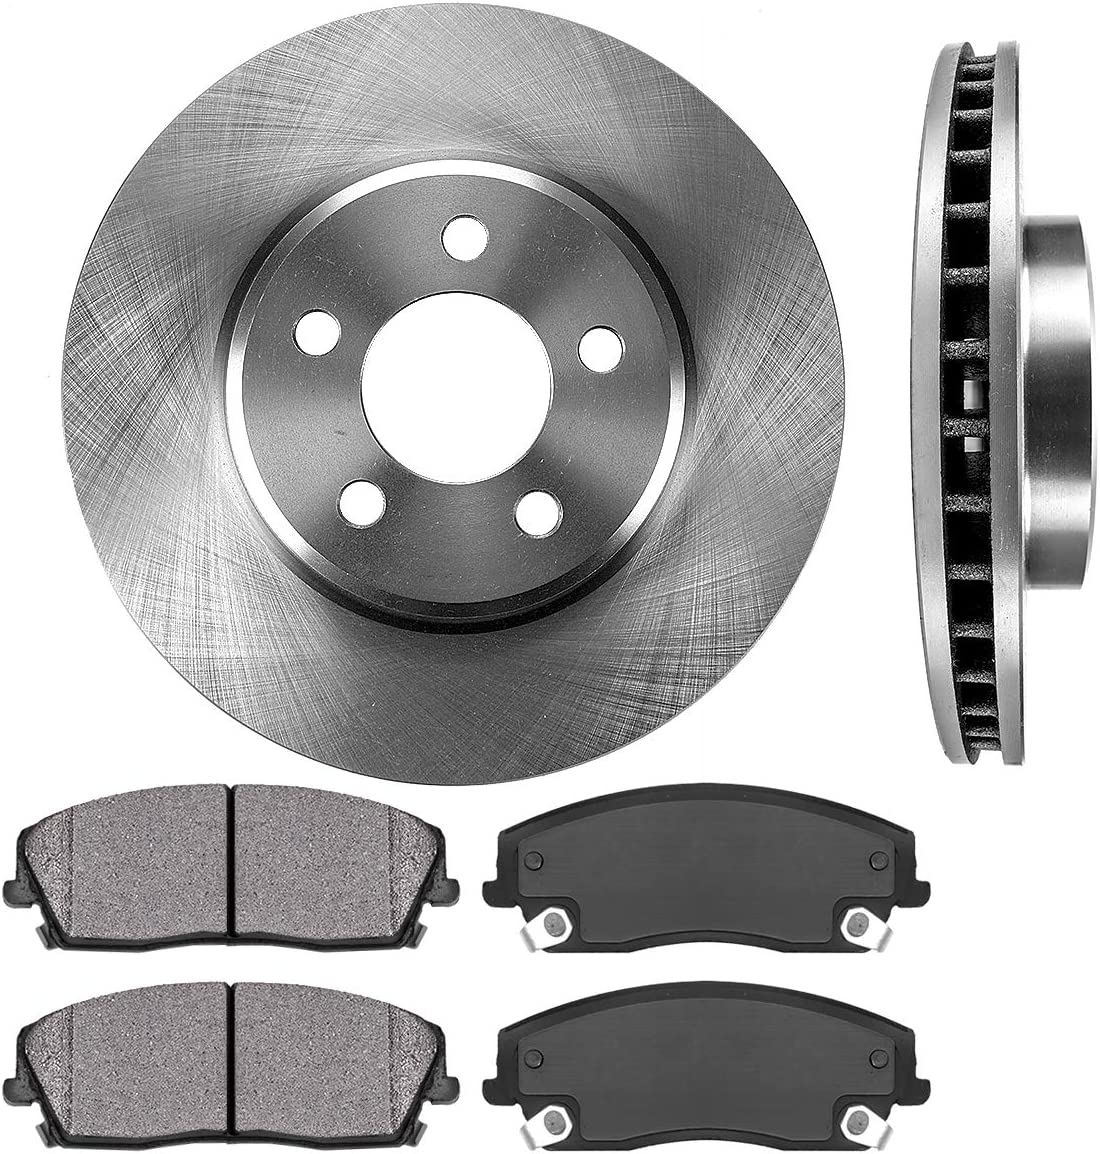 Premium FRONT Brake Rotors for Chrysler 300 Dodge Challenger Charger Magnum Detroit Axle 320mm 12.6